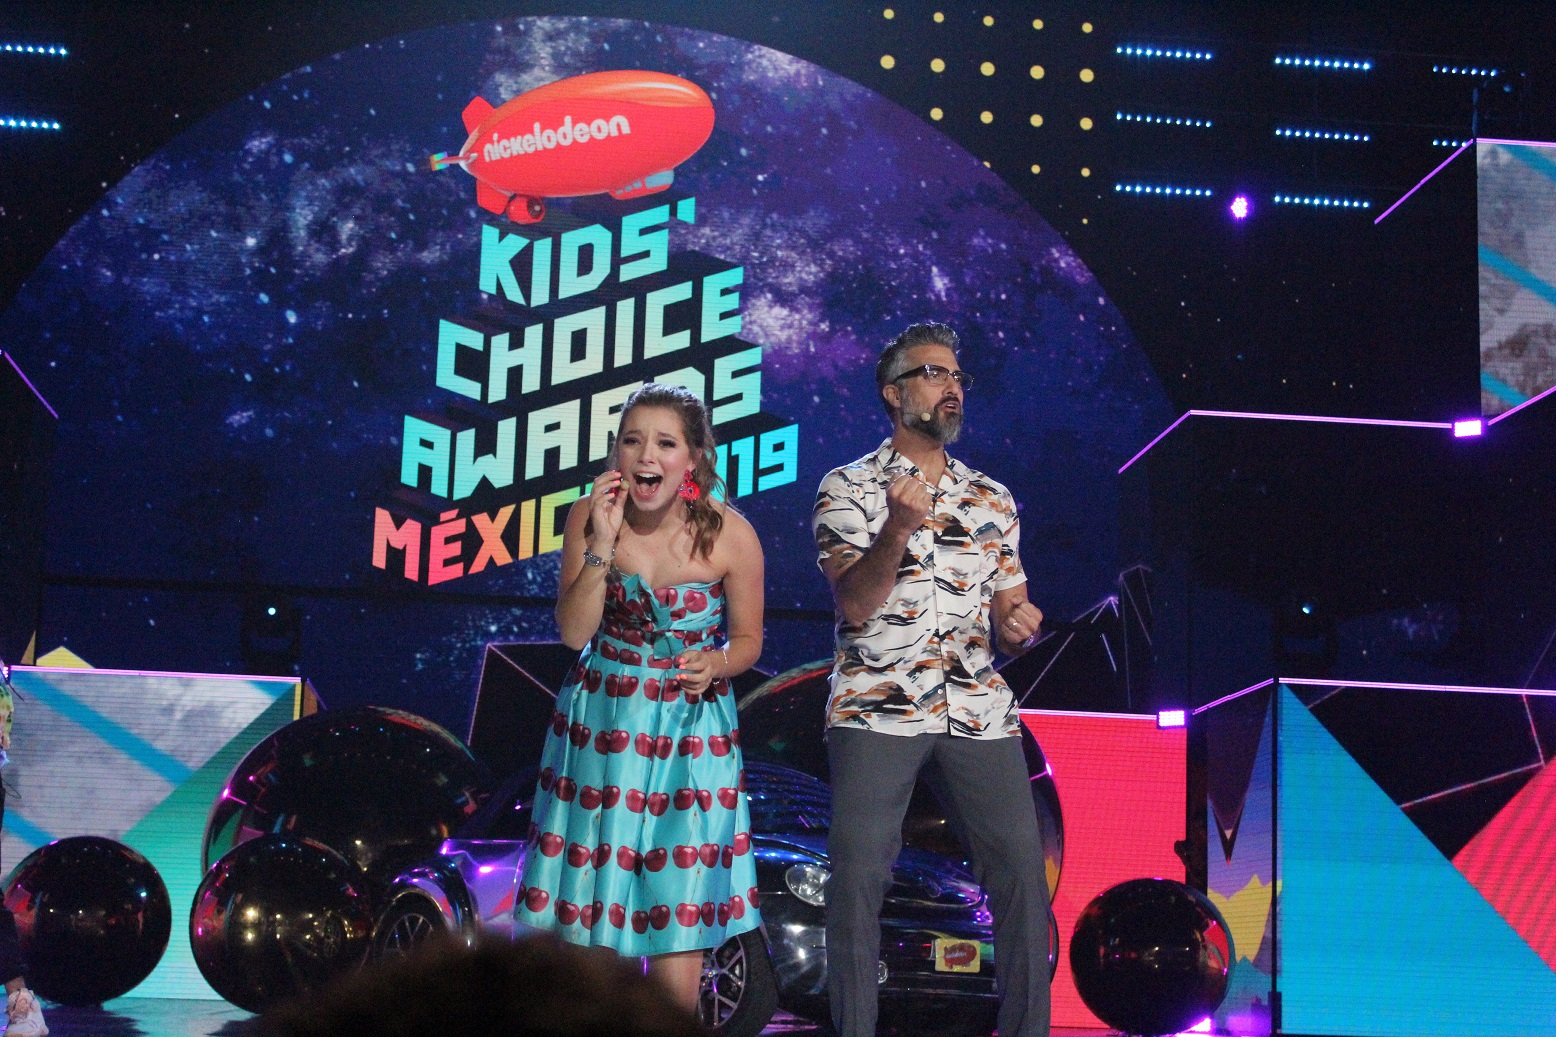 Kids' Choice Awards México 2019